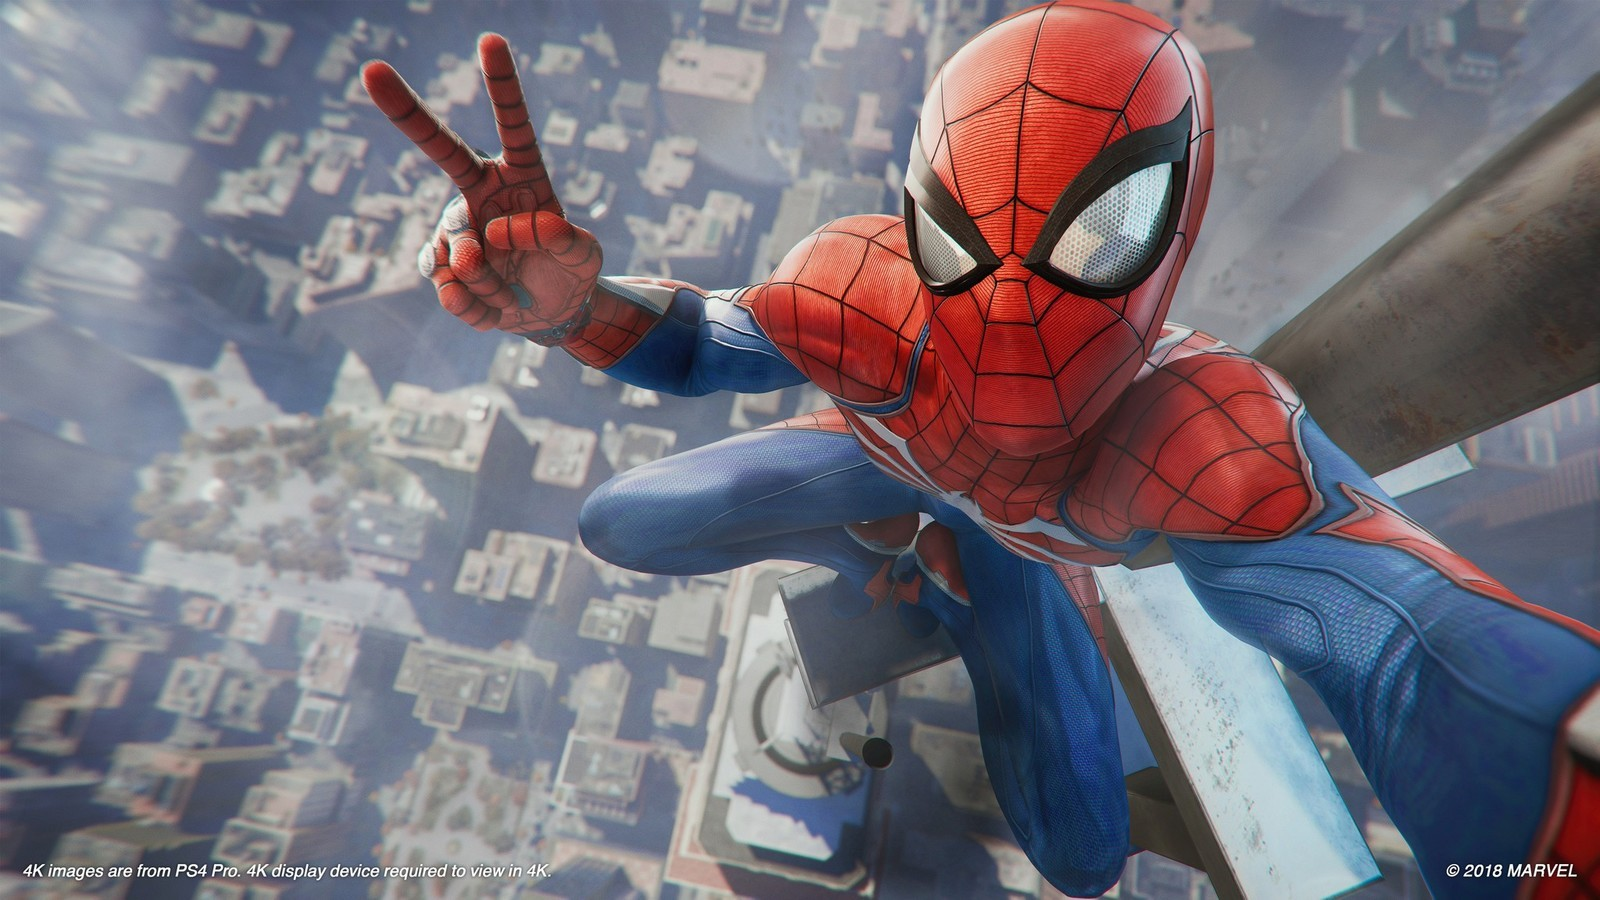 review: marvel's spider-man for the ps4 is the greatest spider-man